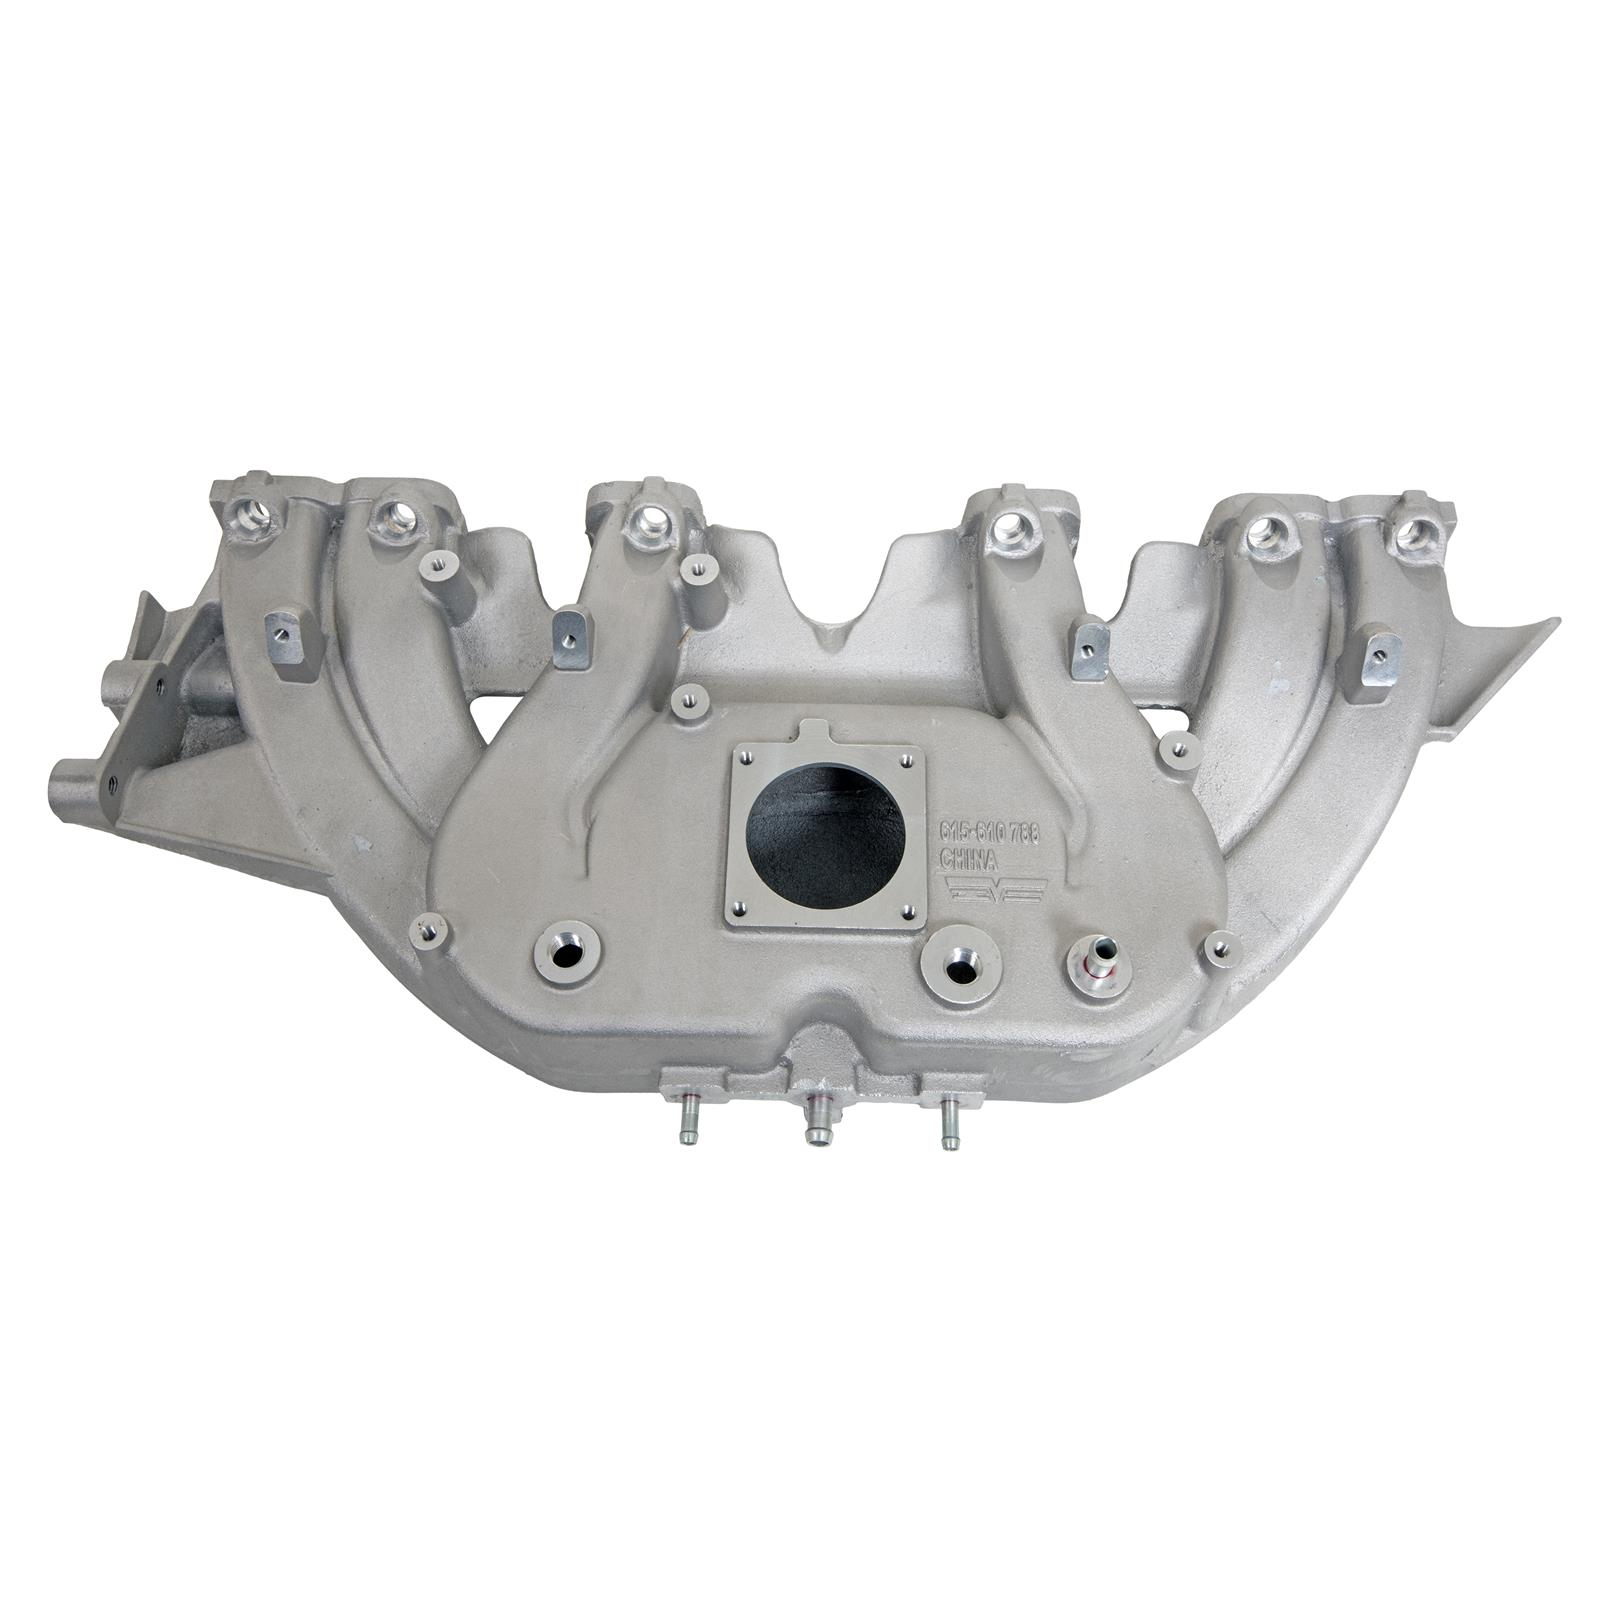 hight resolution of dorman intake manifolds 615 610 free shipping on orders over 99 at summit racing